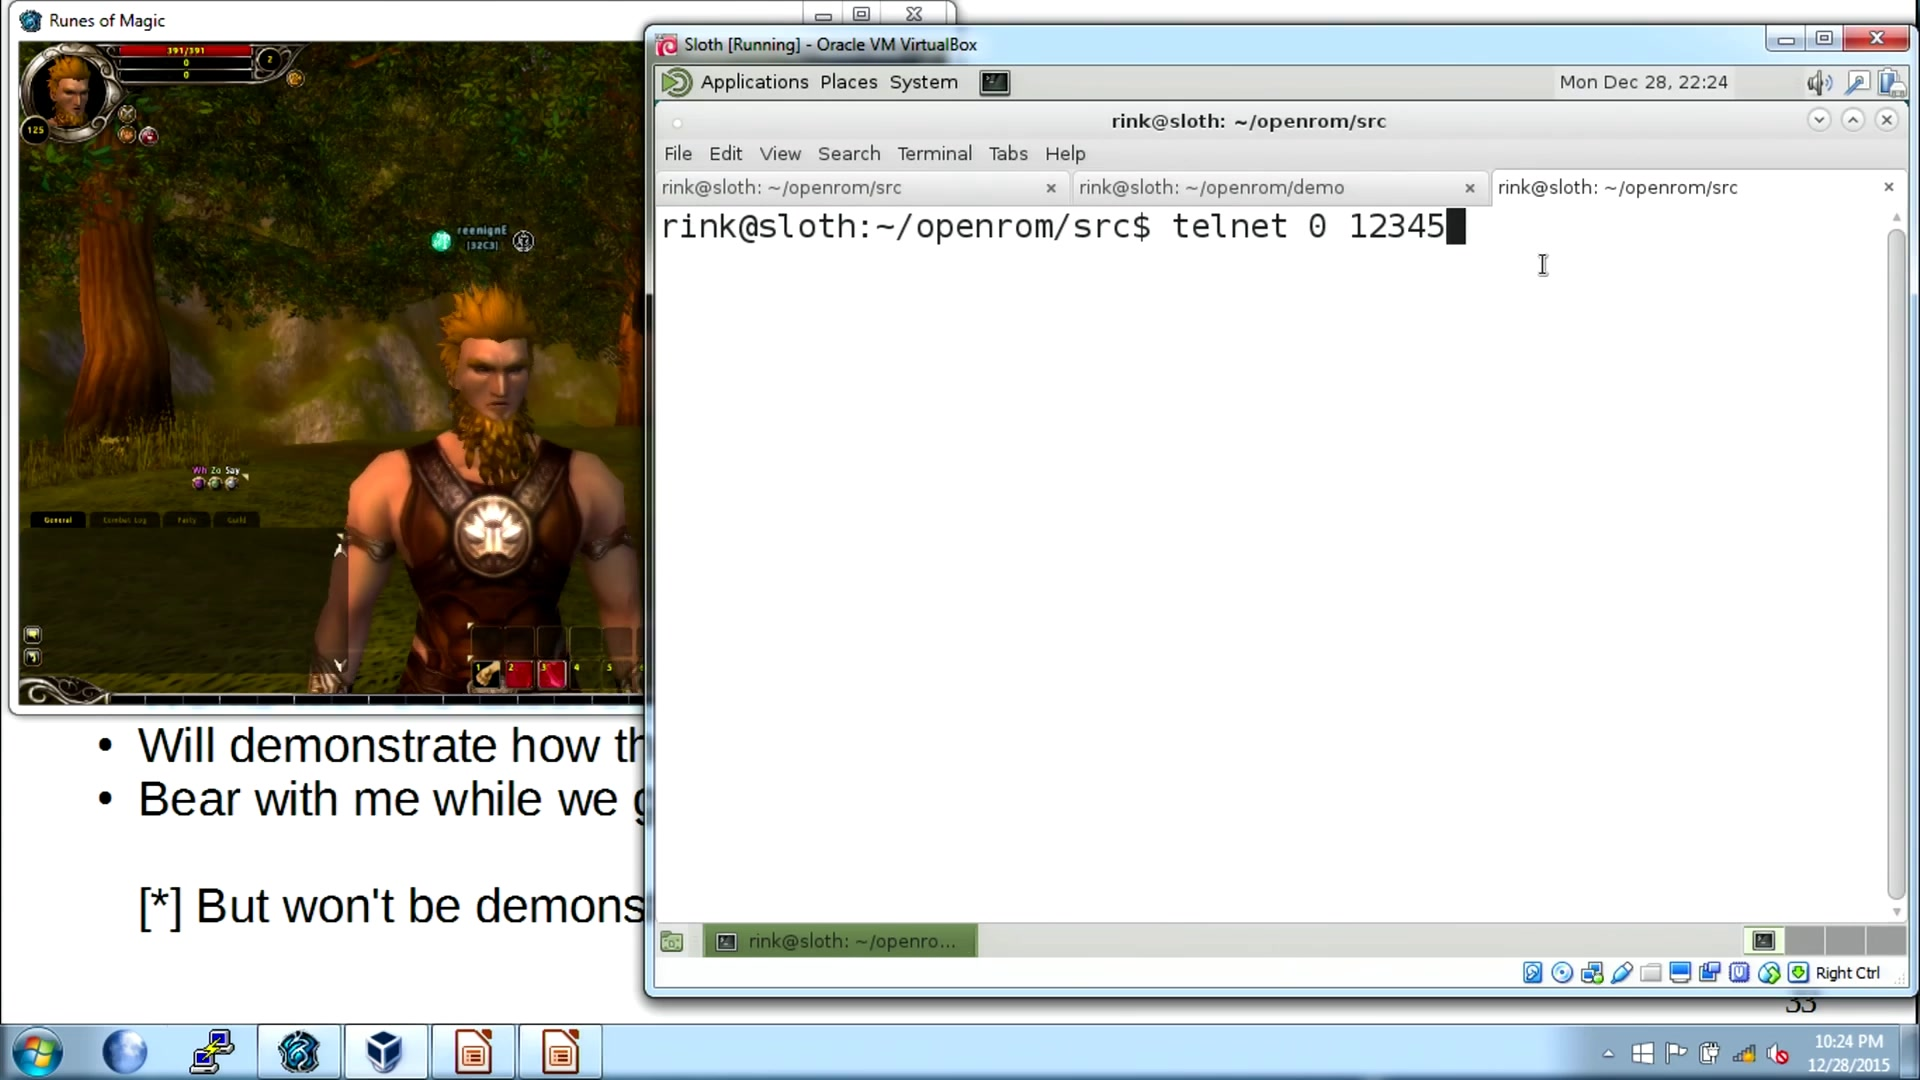 media ccc de - How hackers grind an MMORPG: by taking it apart!